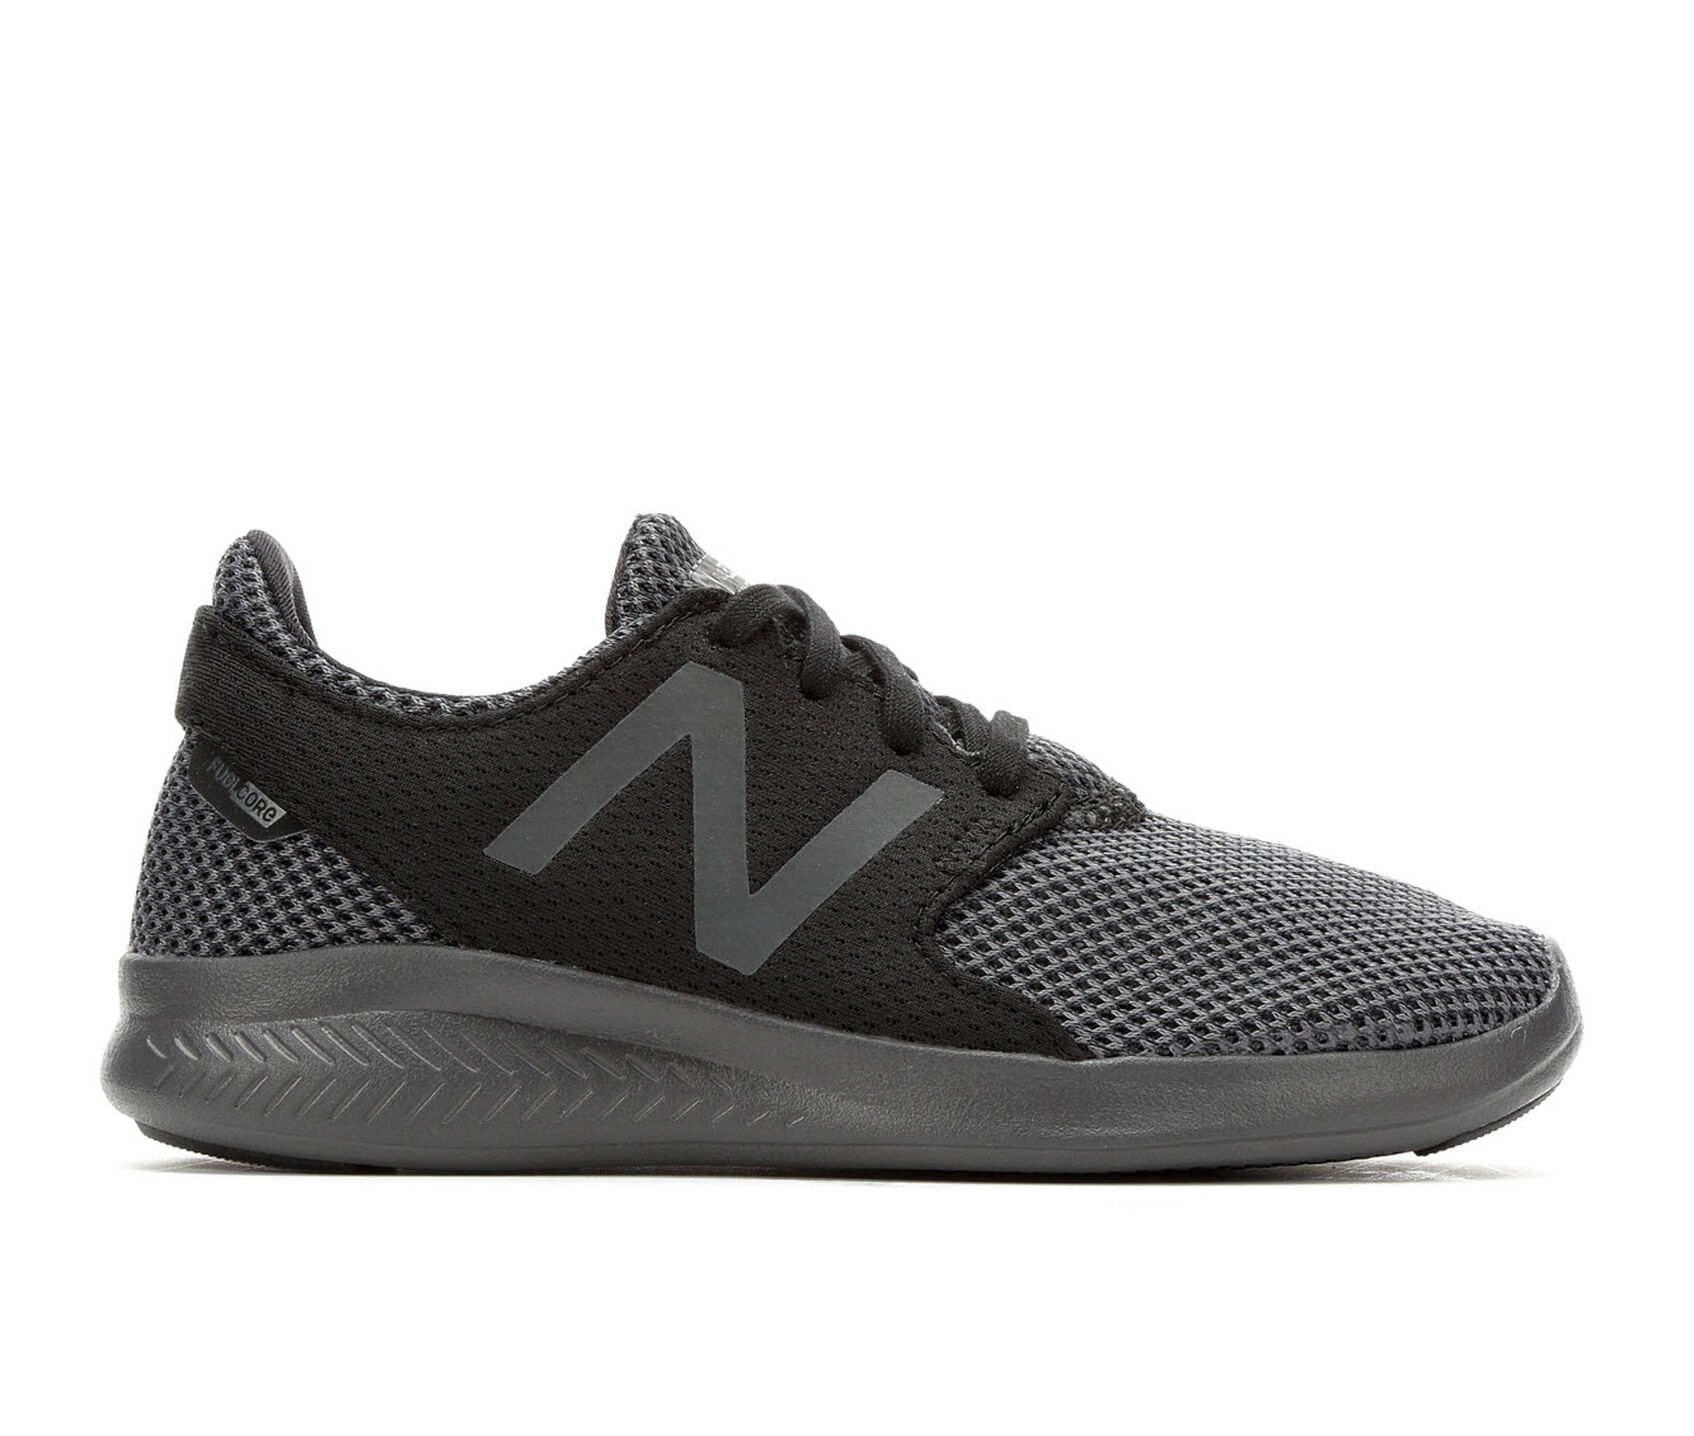 d86279a6c367d ... New Balance Little Kid & Big Kid Coast Running Shoes. Previous